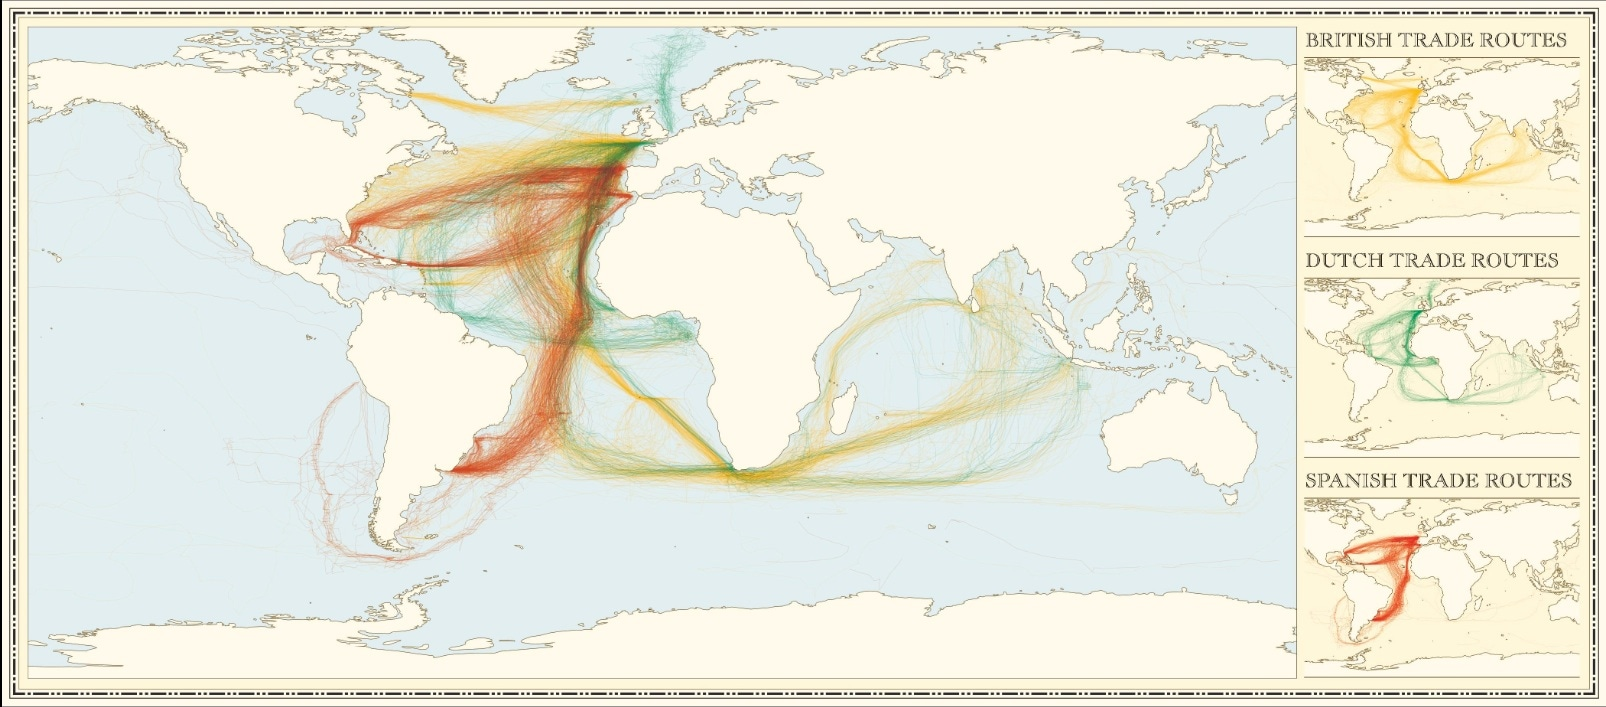 Data source: Climatological Database for the World's Oceans (James Cheshire)